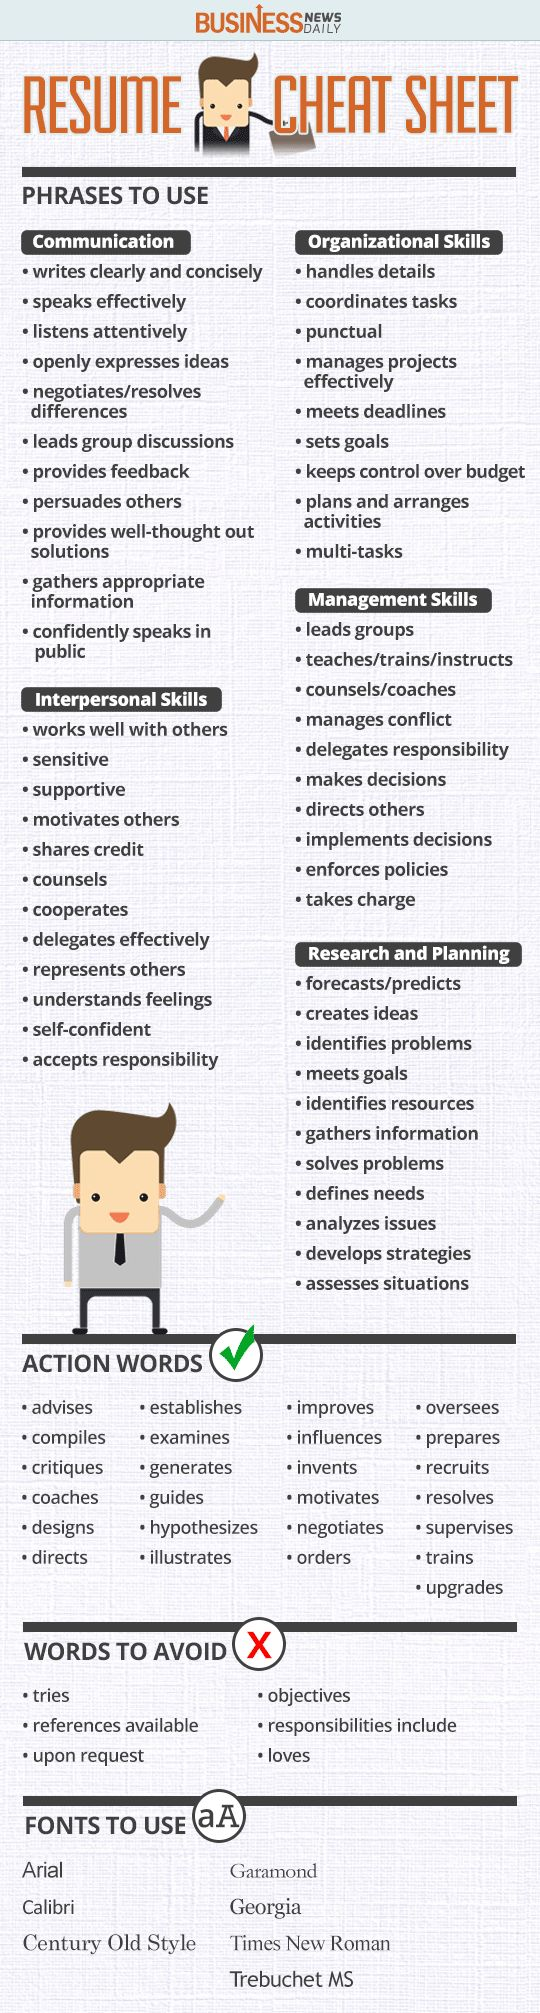 Opposenewapstandardsus  Surprising  Ideas About Resume On Pinterest  Cv Format Resume Cv And  With Exquisite Resume Cheat Sheet Infographic Andrews Almost Done With A Complete Unit On Employment Which With Lovely Read Write Think Resume Generator Also How To Make A Cover Letter For Resume In Addition Interpersonal Skills Resume And First Time Resume As Well As Resume Cover Letter Templates Additionally Resume Email From Pinterestcom With Opposenewapstandardsus  Exquisite  Ideas About Resume On Pinterest  Cv Format Resume Cv And  With Lovely Resume Cheat Sheet Infographic Andrews Almost Done With A Complete Unit On Employment Which And Surprising Read Write Think Resume Generator Also How To Make A Cover Letter For Resume In Addition Interpersonal Skills Resume From Pinterestcom